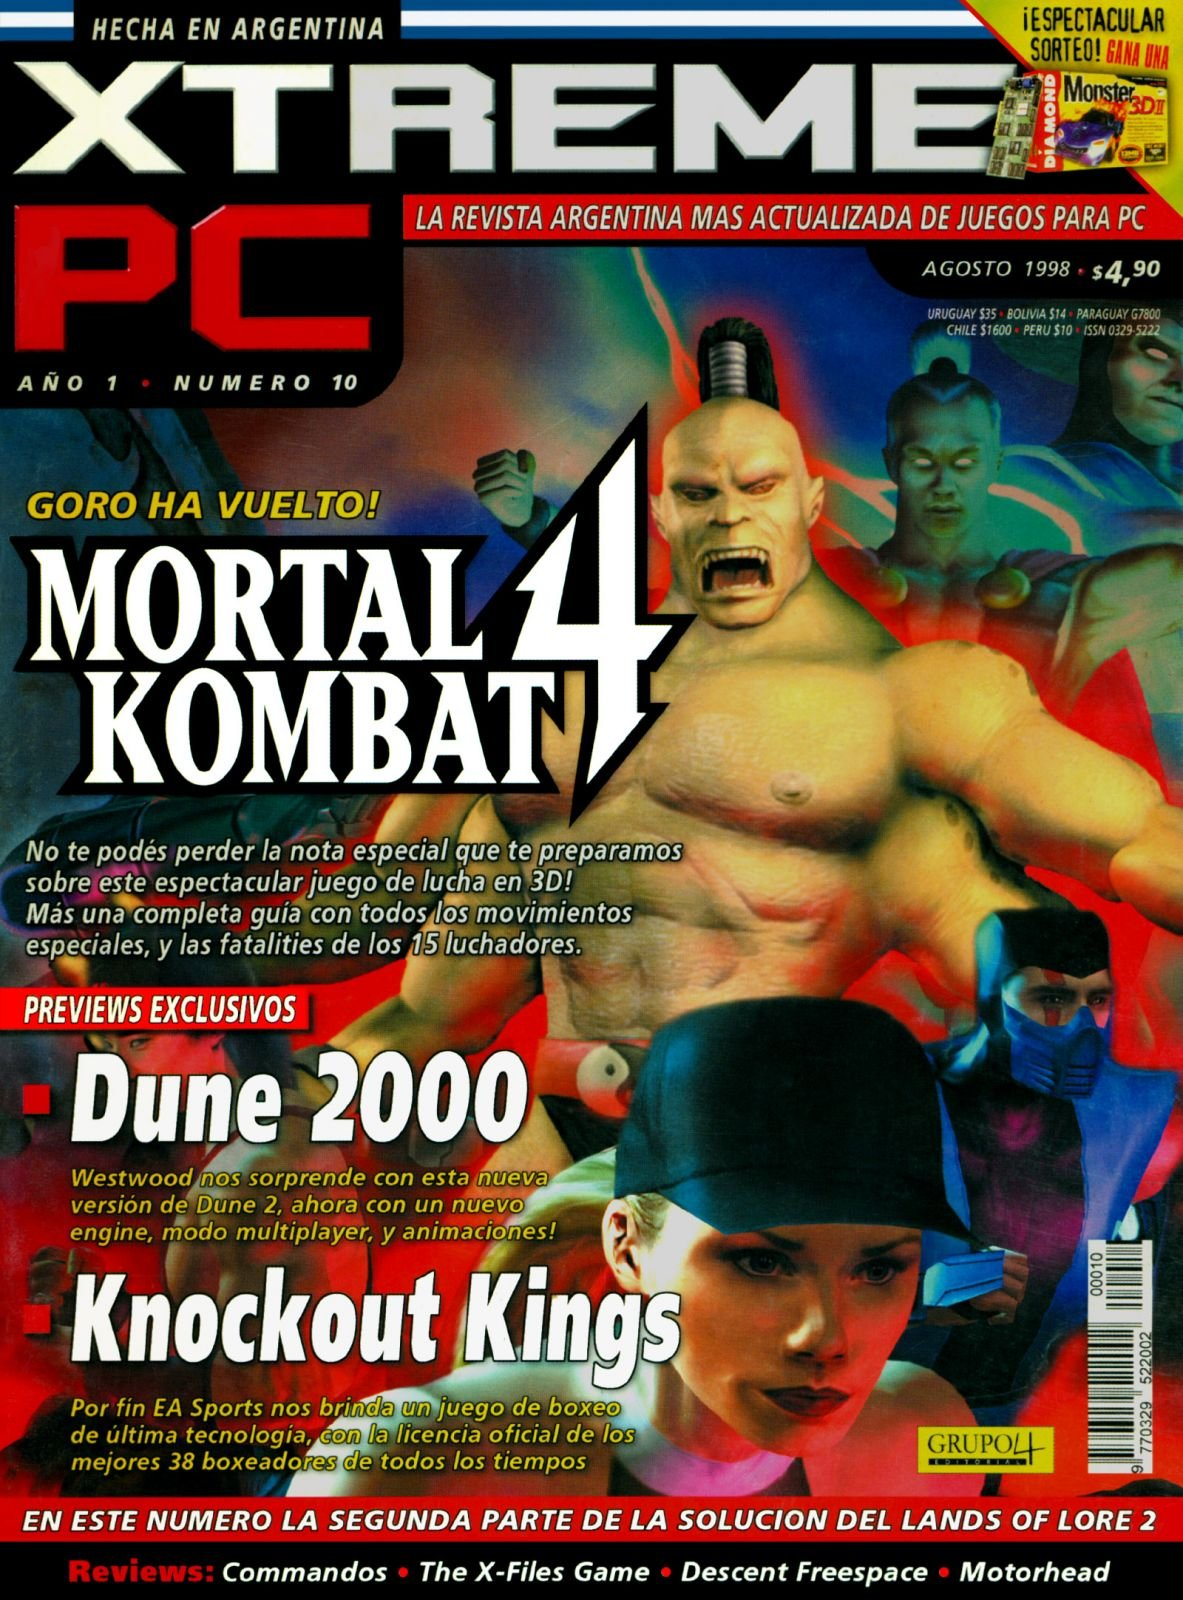 Xtreme PC 10 August 1998